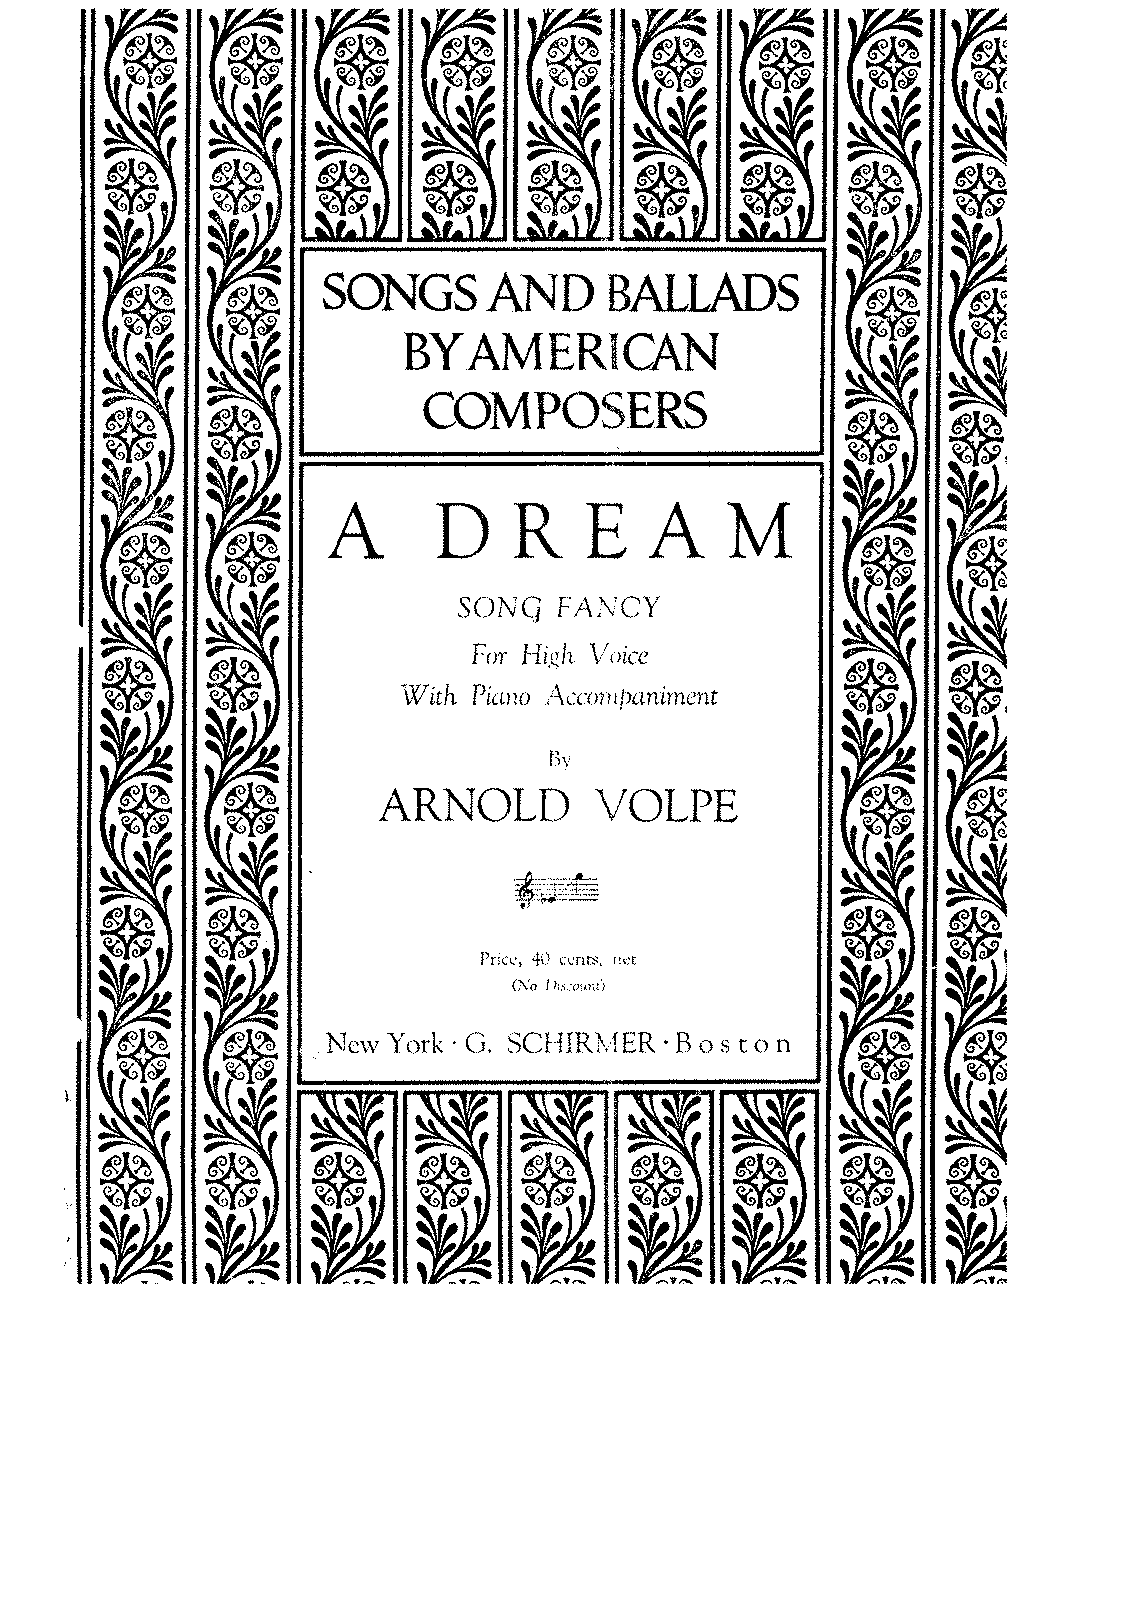 SIBLEY1802.16442.17b0-39087011997949dream.pdf